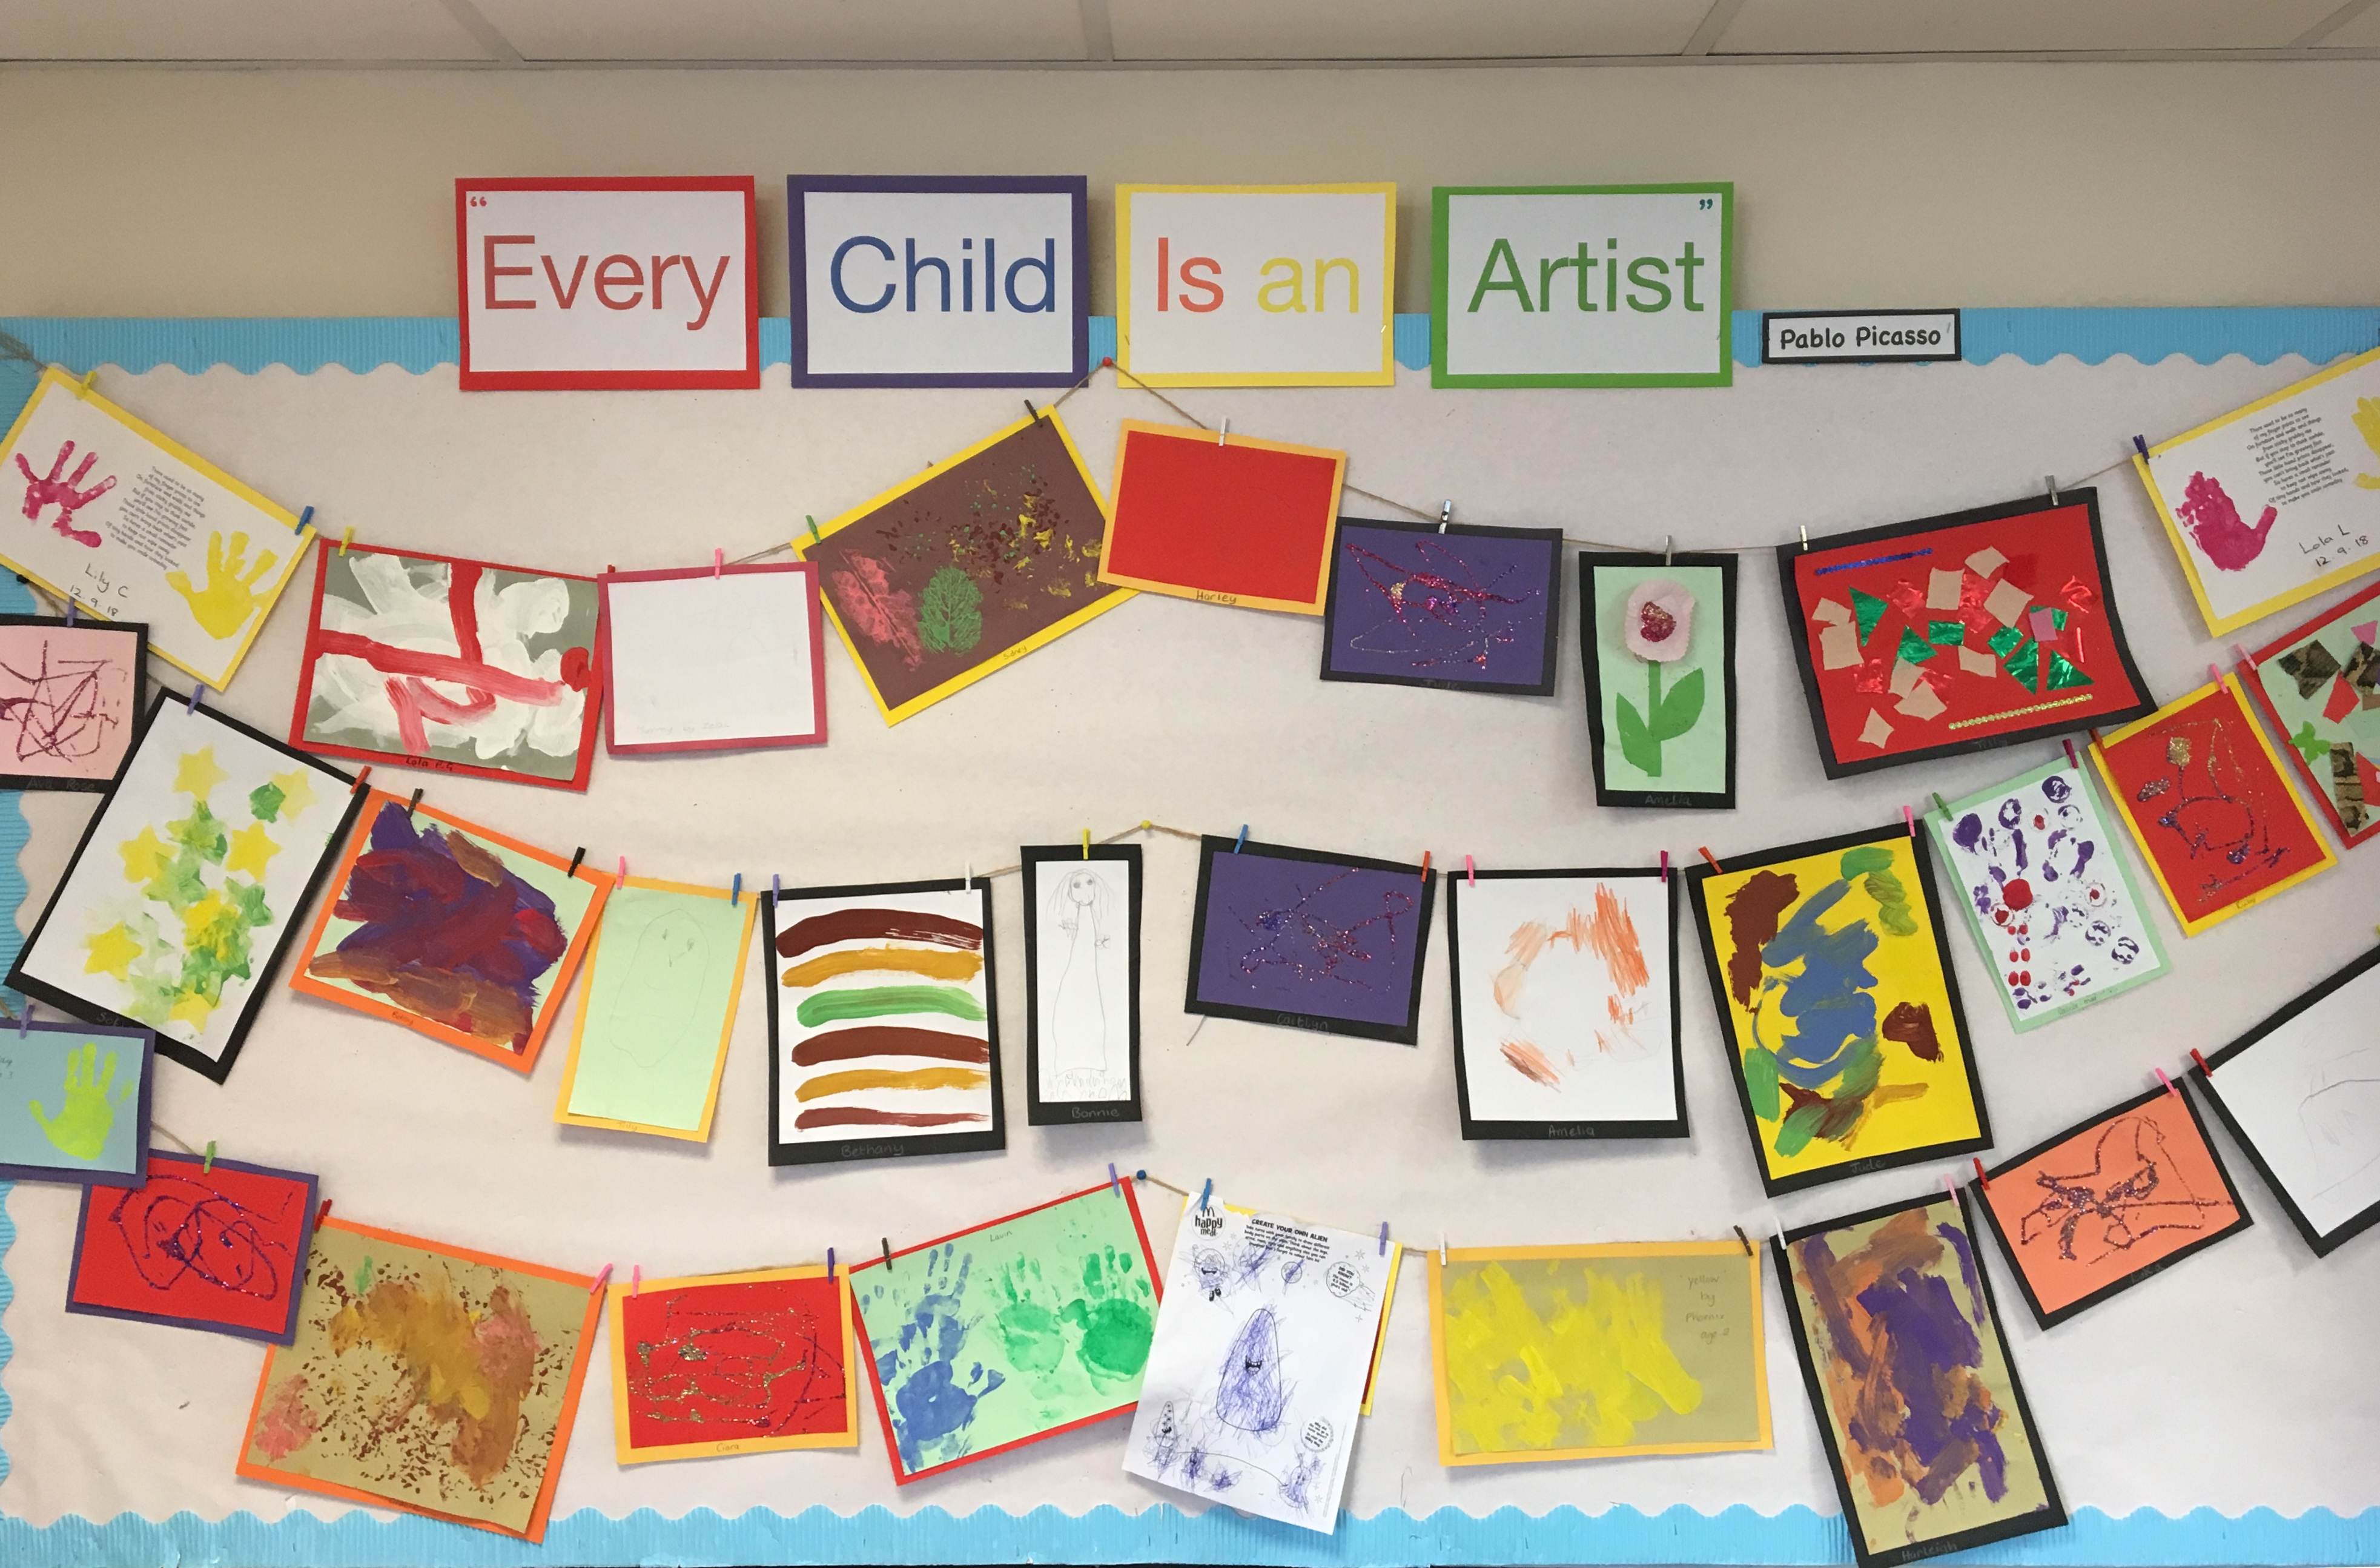 Child Artist Display